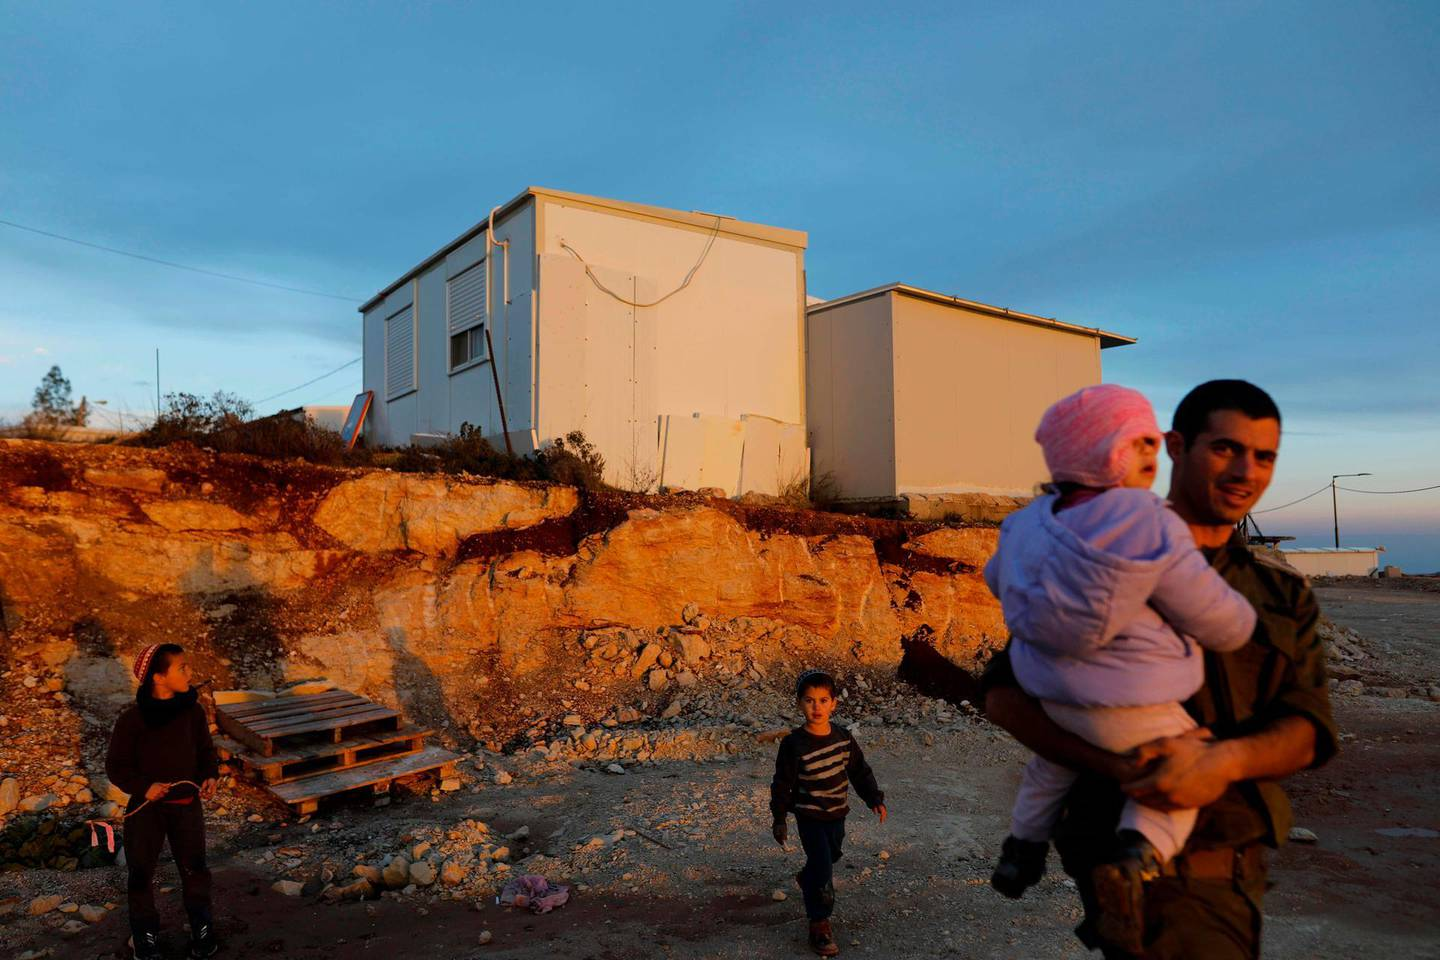 Men and children play in the Kida outpost near the Israeli Shilo settlement on January 27, 2020 near the Palestinian city of Nablus in the occupied West Bank. The Palestinians urged world powers to reject Donald Trump's peace plan, which they said president Mahmud Abbas had refused to discuss with his US counterpart despite several outreaches. Trump is due to unveil his proposal for Middle East peace this week in Washington, where he is scheduled to meet Israeli Prime Minister Benjamin Netanyahu and opposition leader Benny Gantz.  / AFP / MENAHEM KAHANA